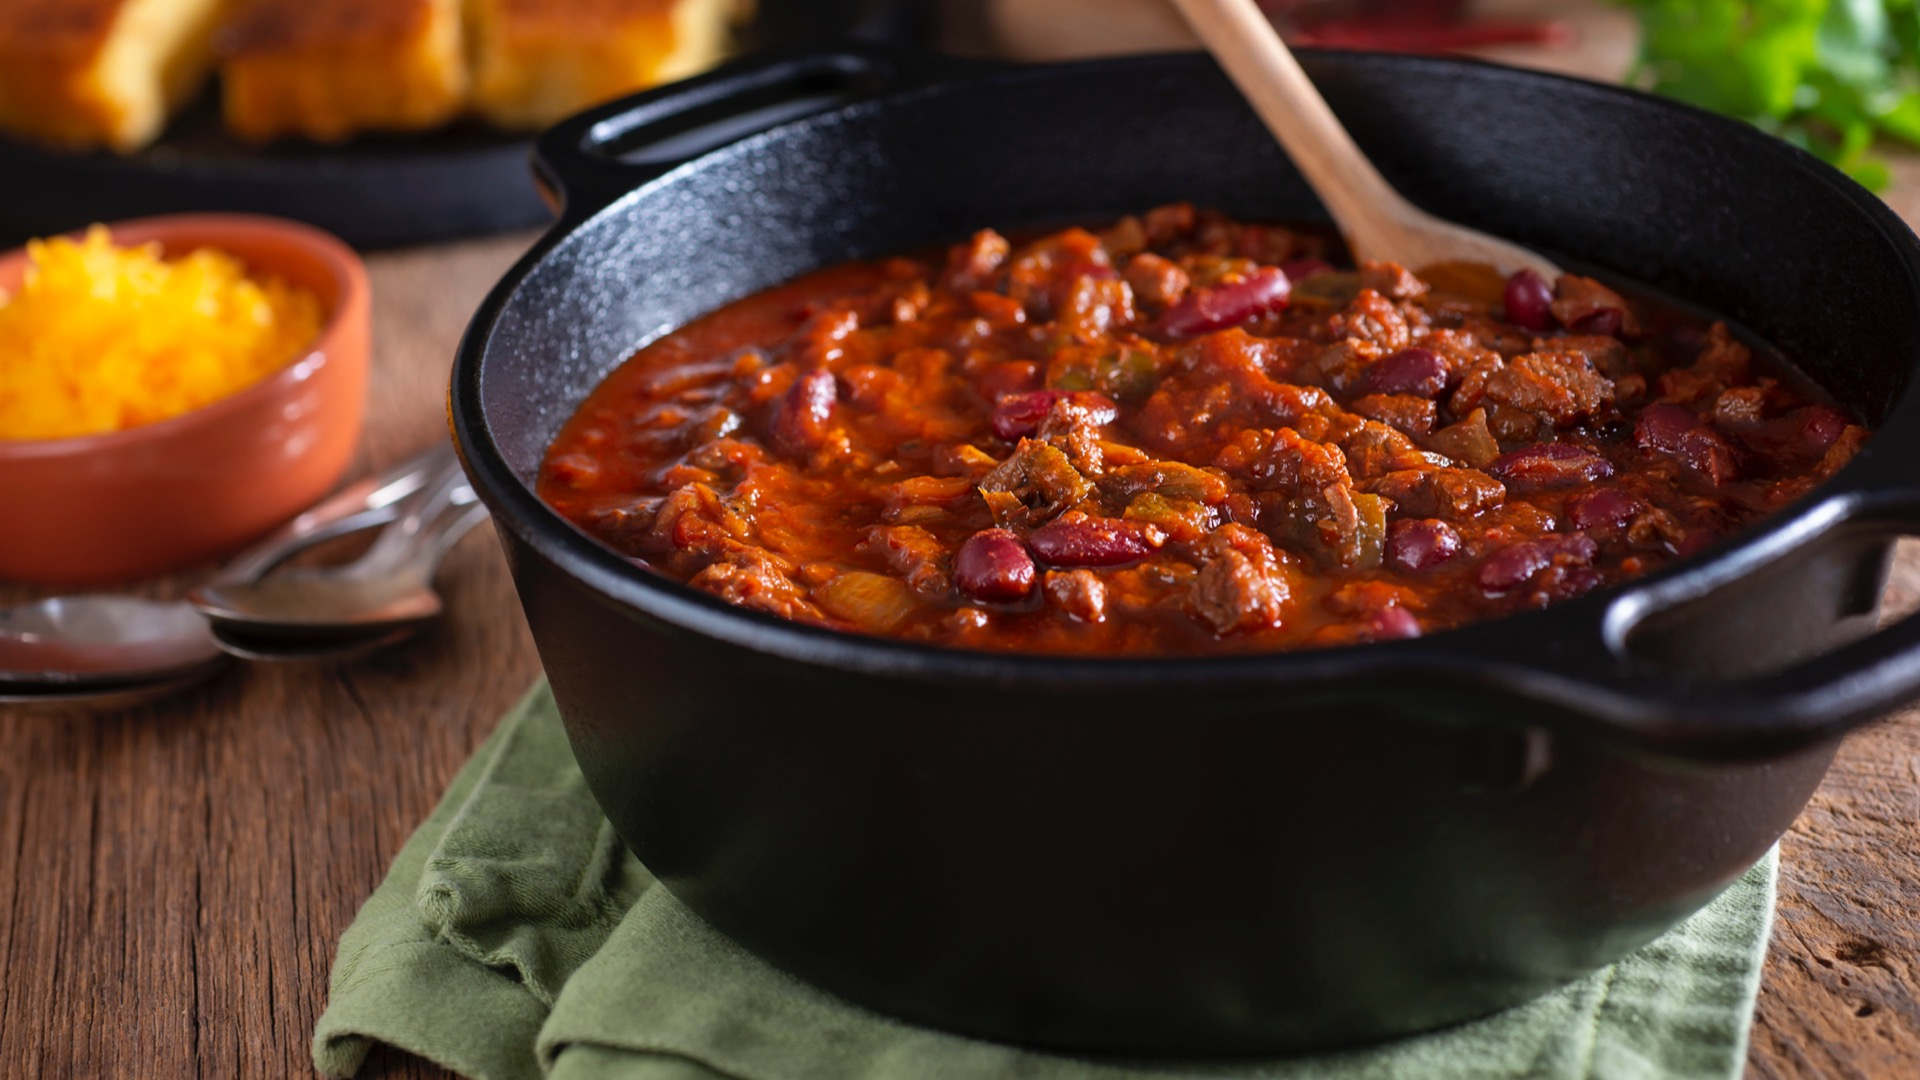 A pot of chili on a green towel with a wooden spoon in the pot | chili in Baltimore